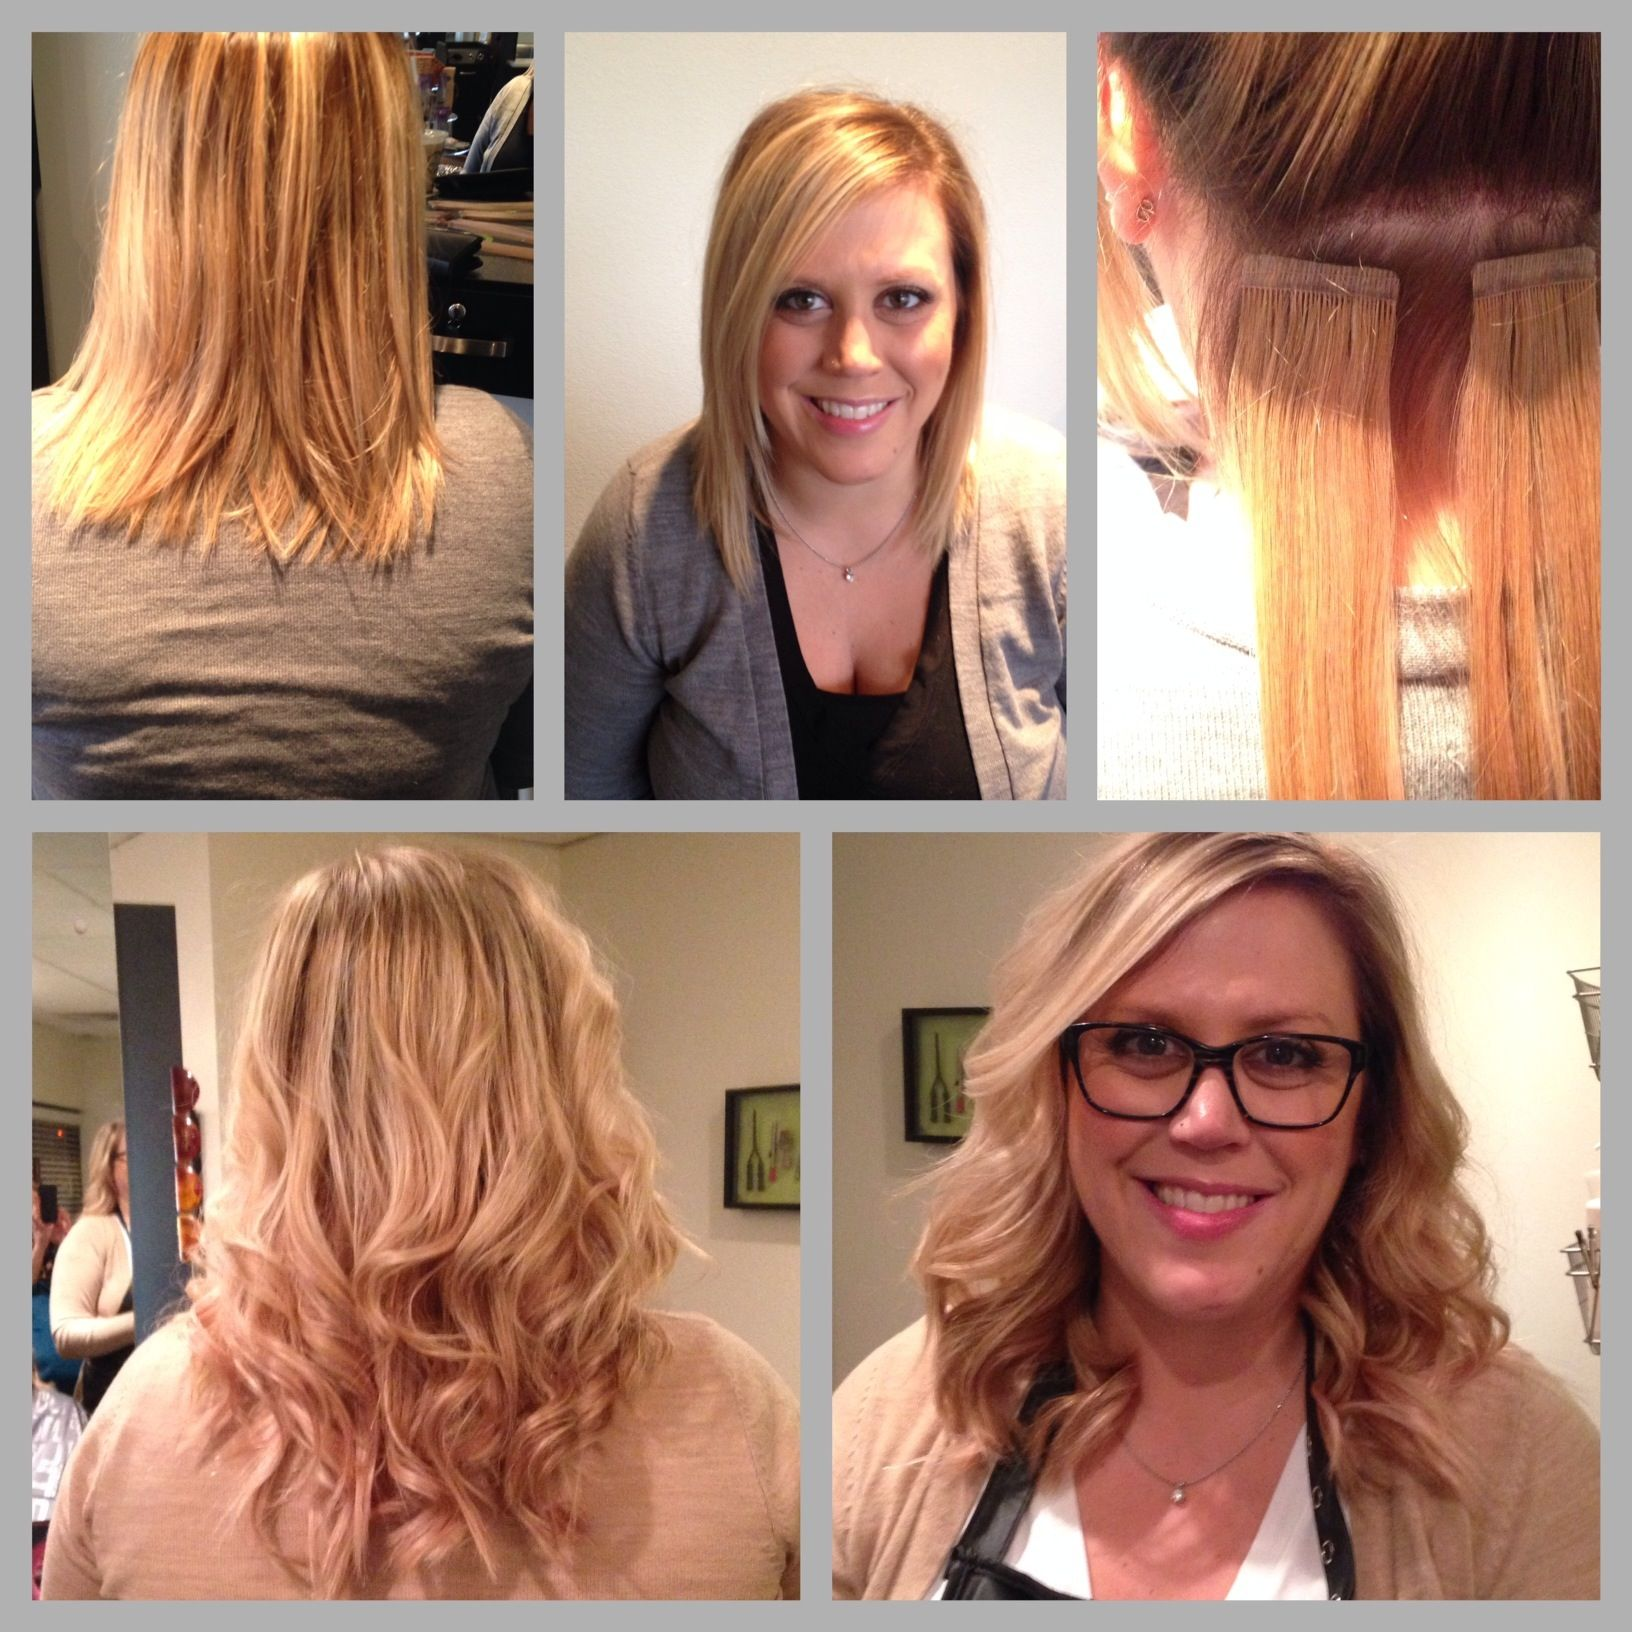 Hair Extensions Before And After To Add A Bit Of Length And Lots Of